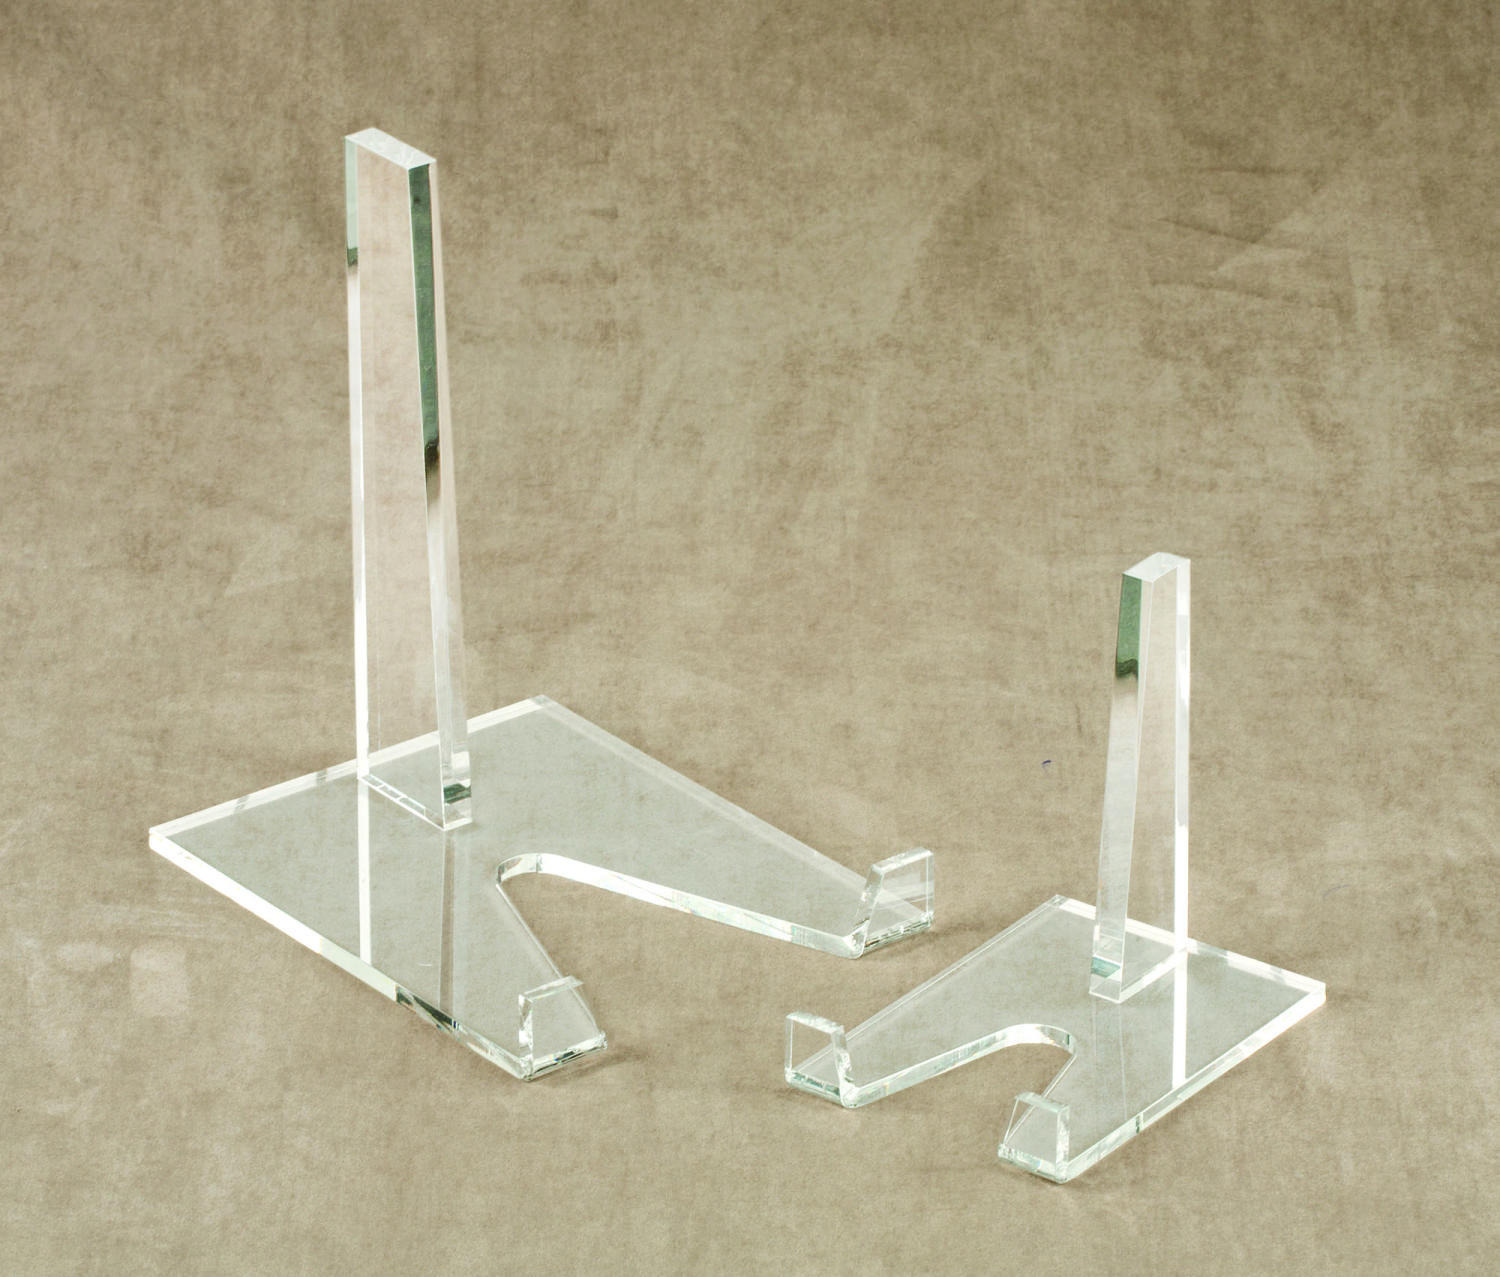 Large Acrylic Display Stands - Tripar International, Inc.